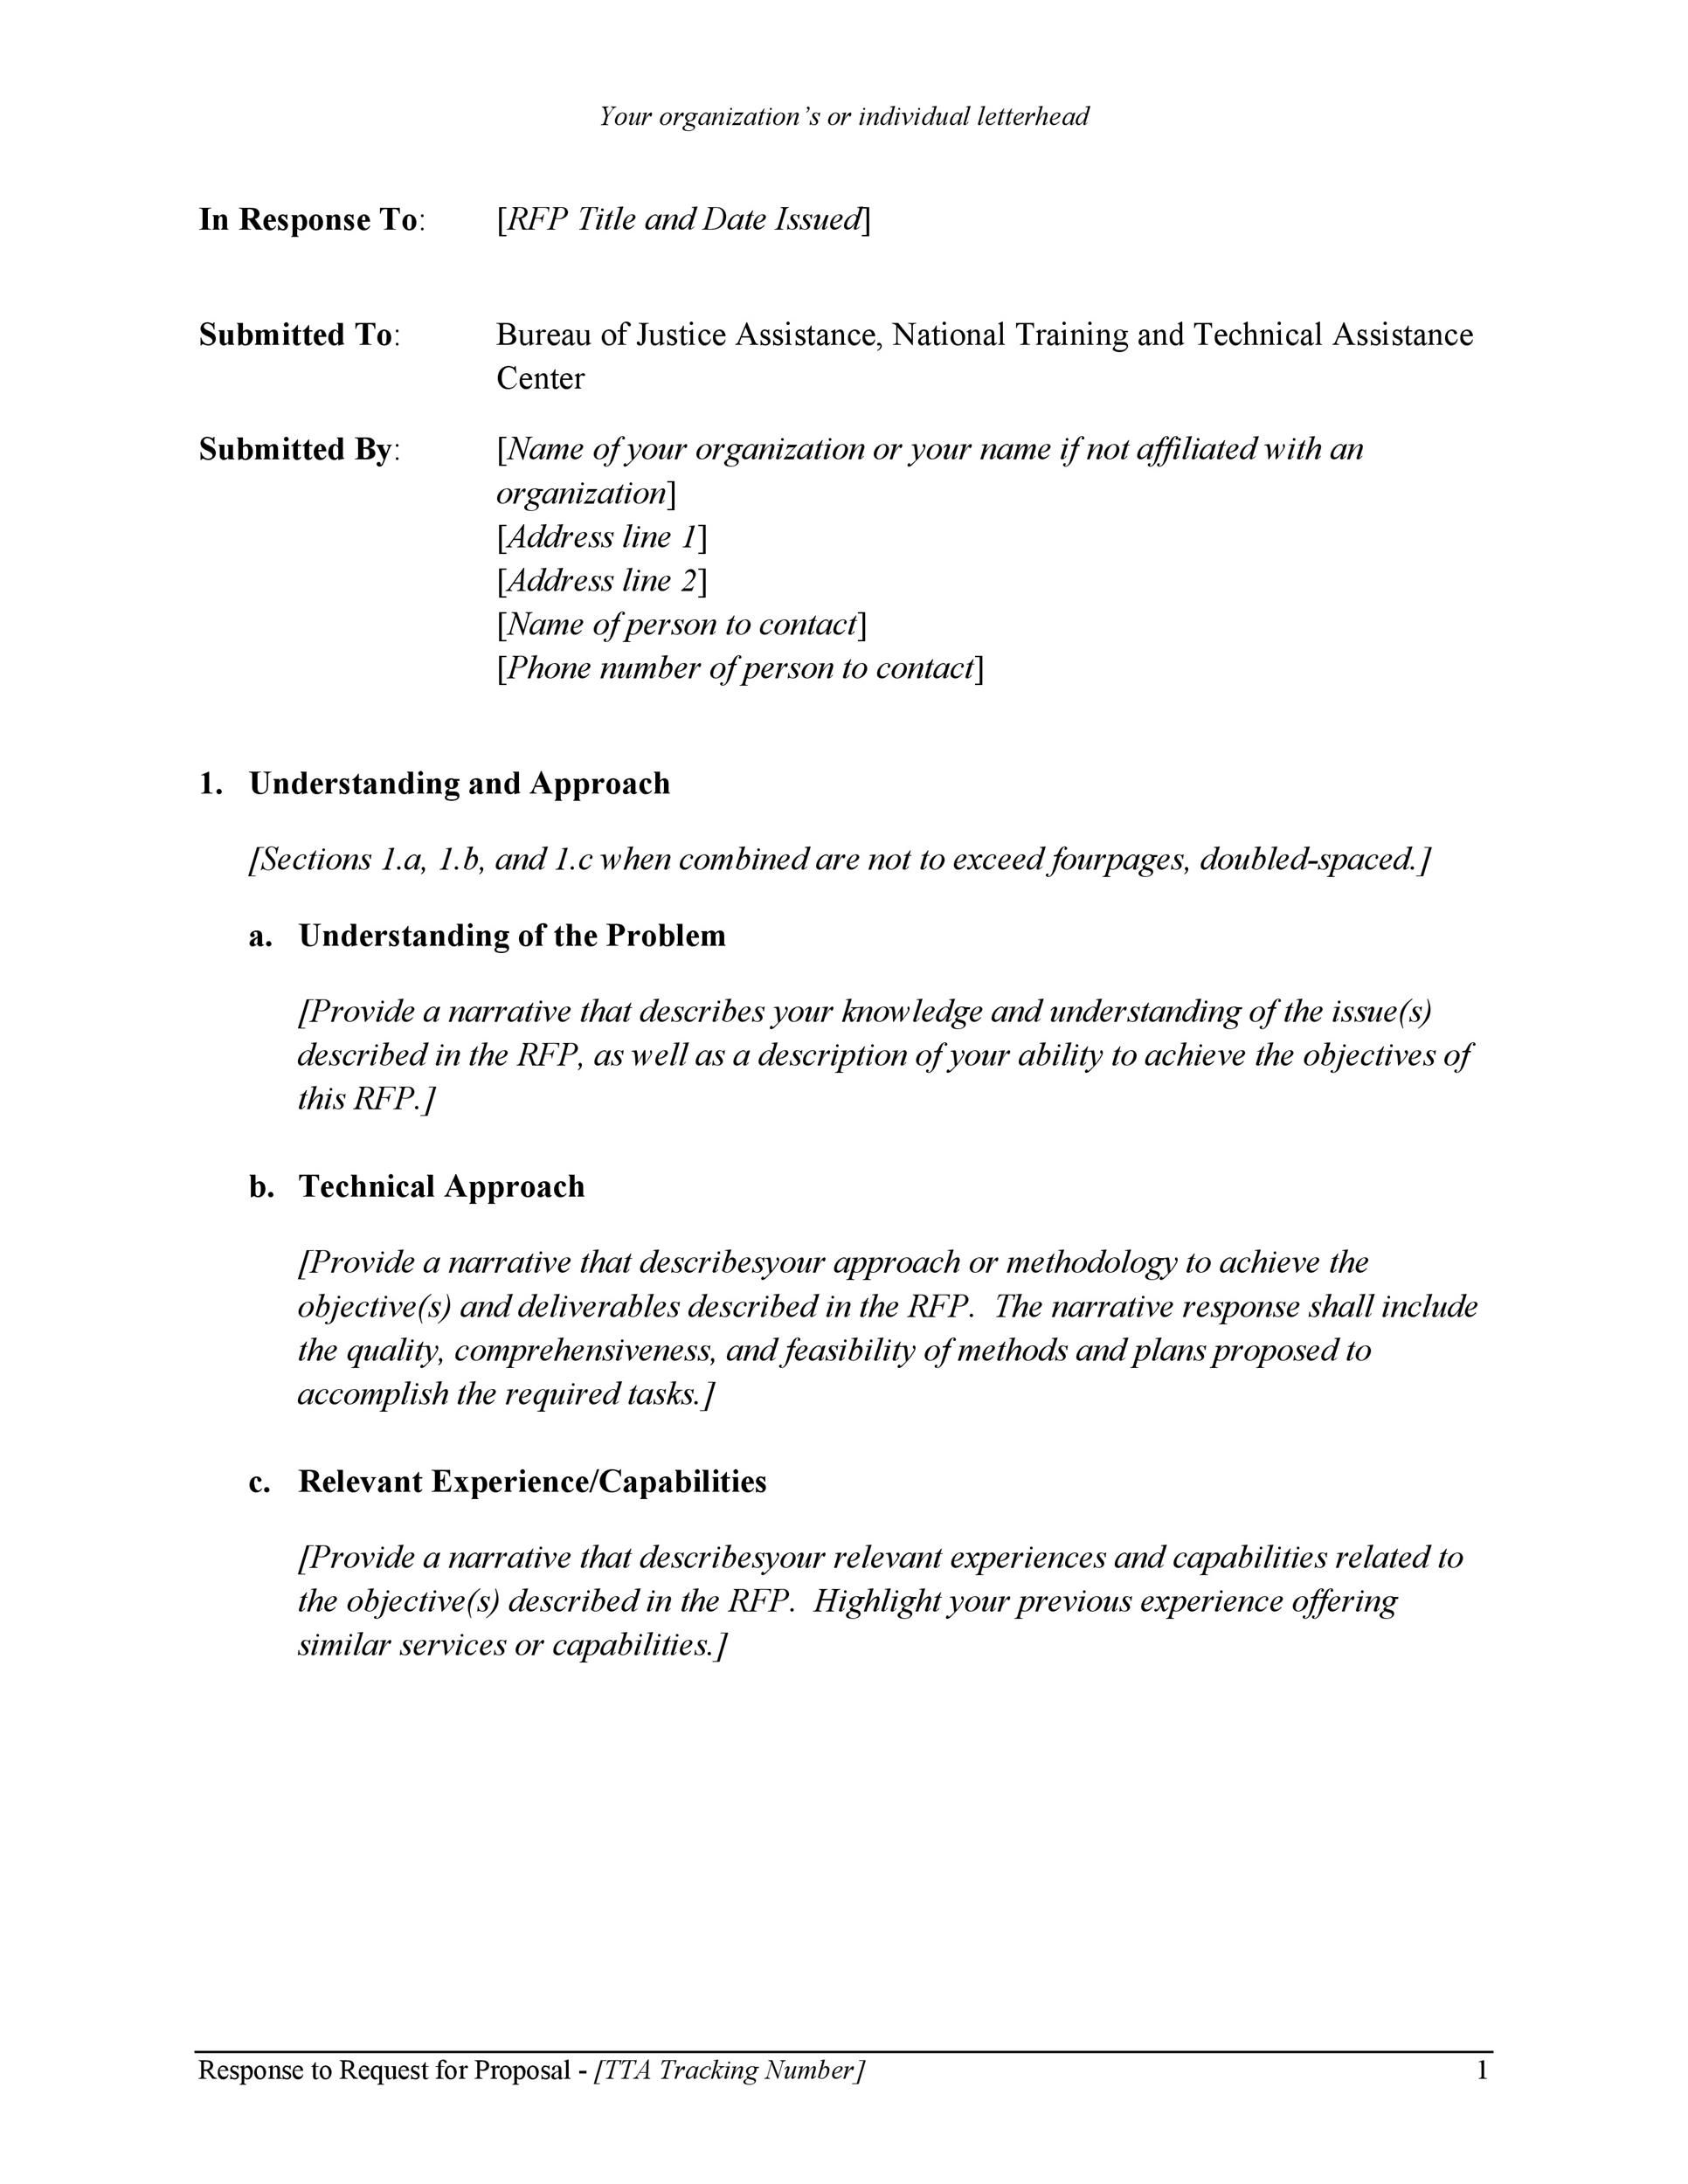 006 Amazing Request For Proposal Response Word Template Image Full